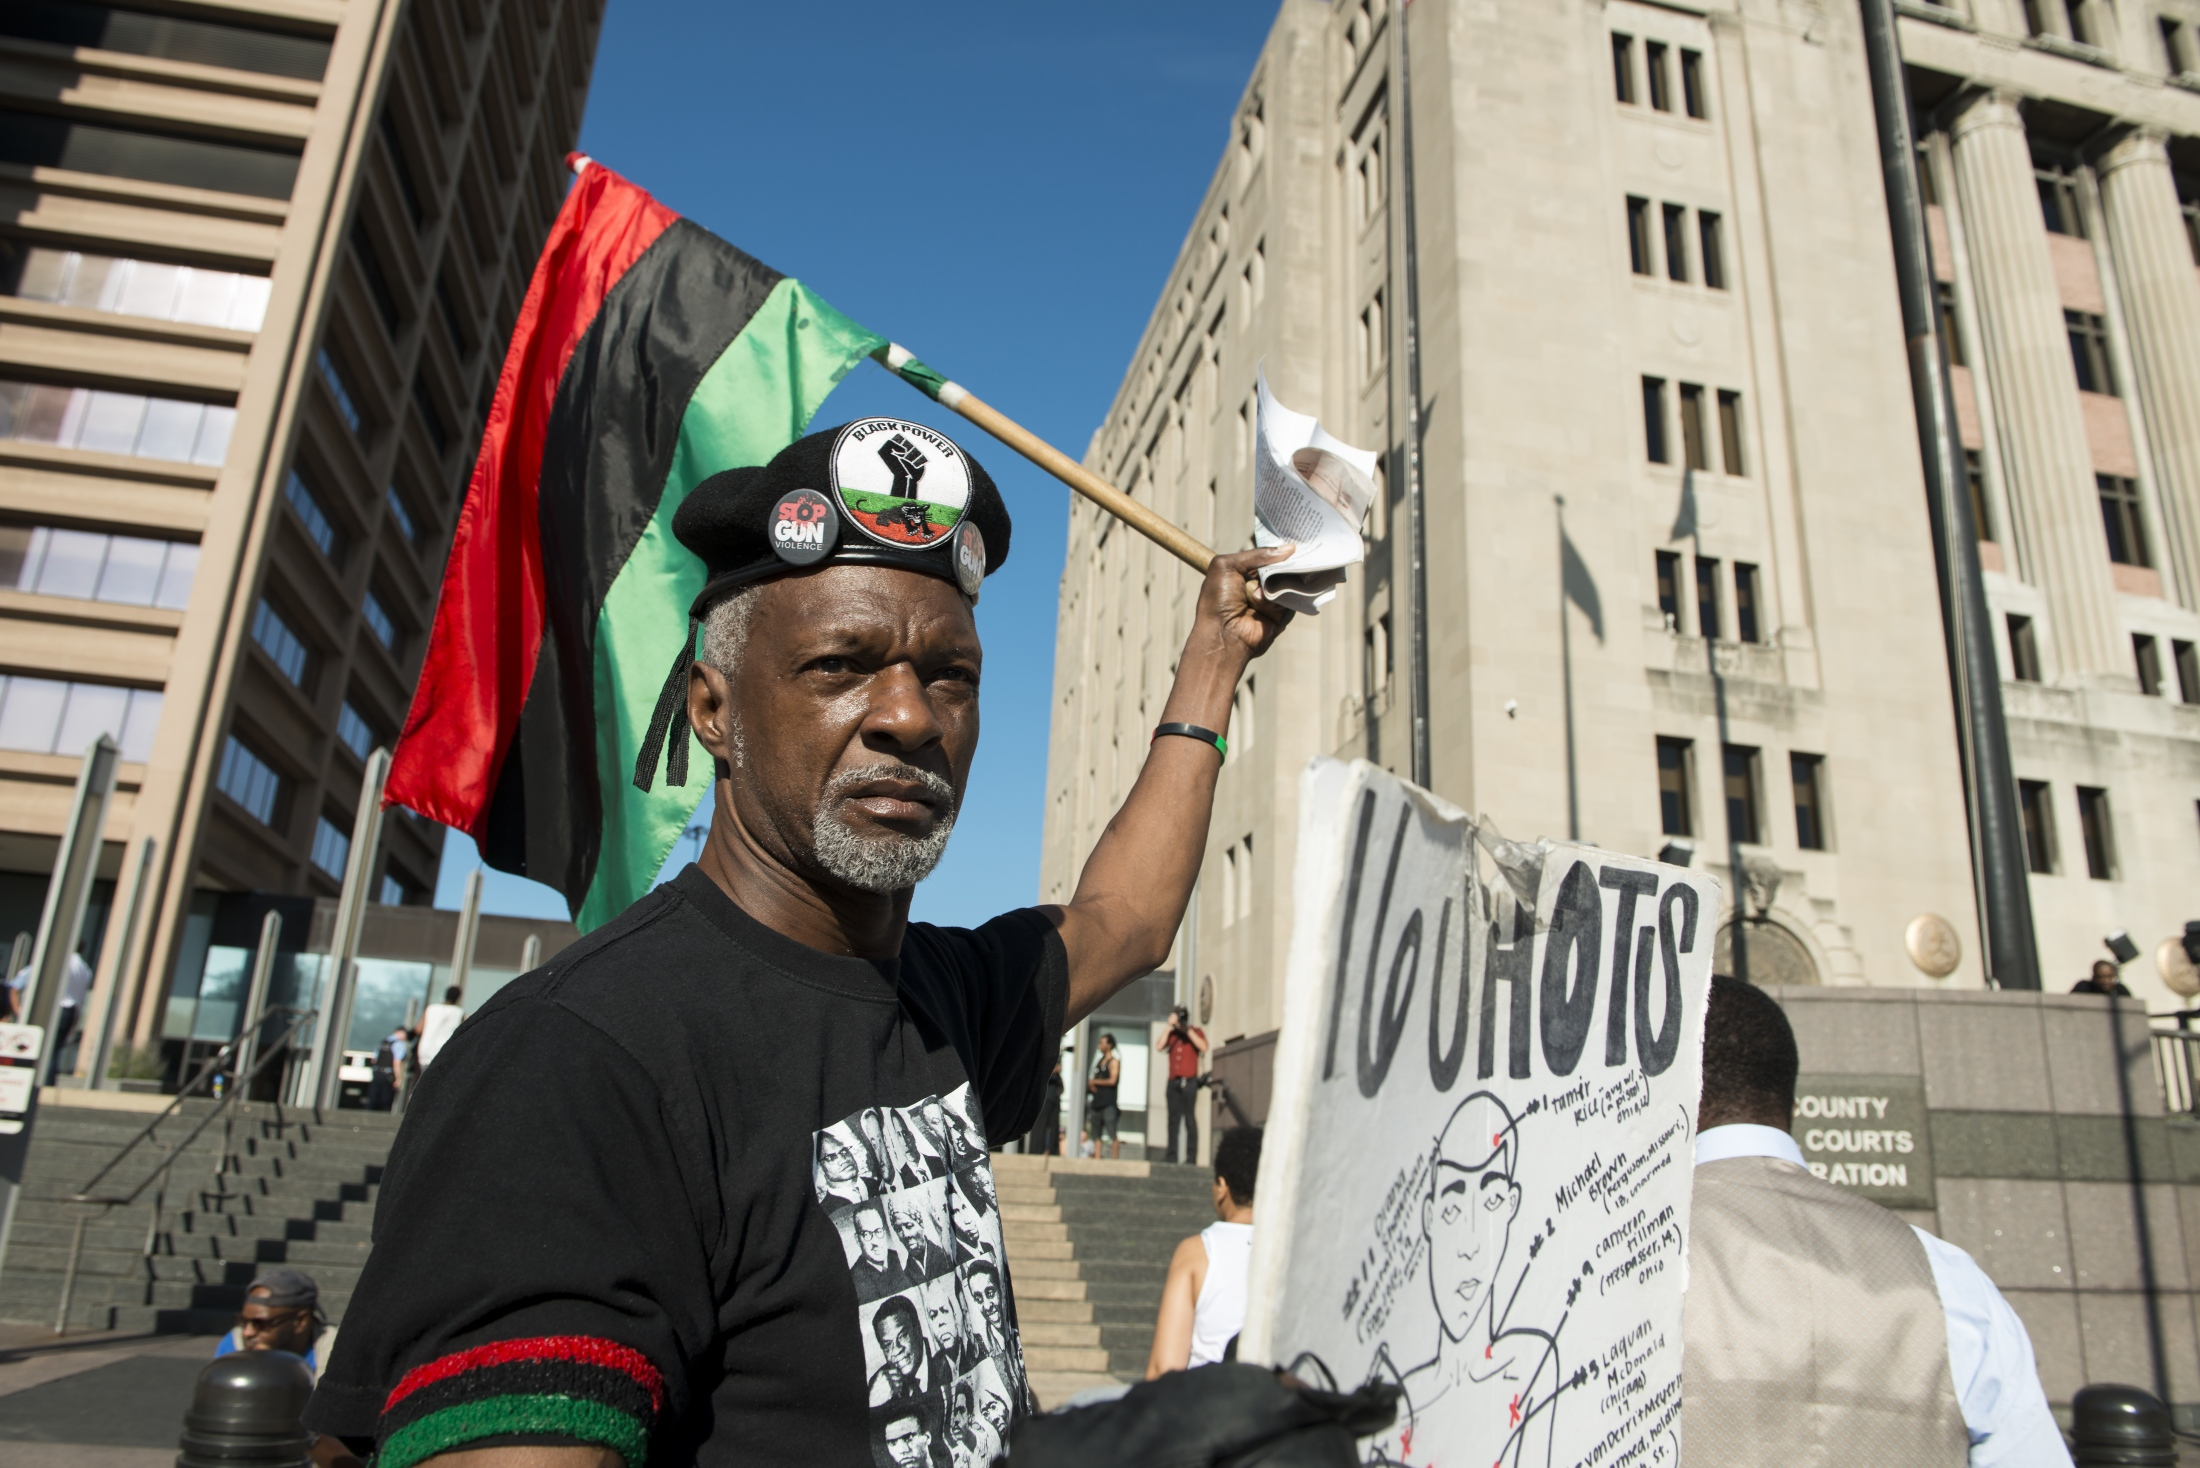 Photography image - 09.05.18 sights from the Protest outside 26th and California as jury selection gets underway for the trial against Chicago Police Officer Jason Van Dyke. First Chicago police officer to ever be indicted for first degree murder.